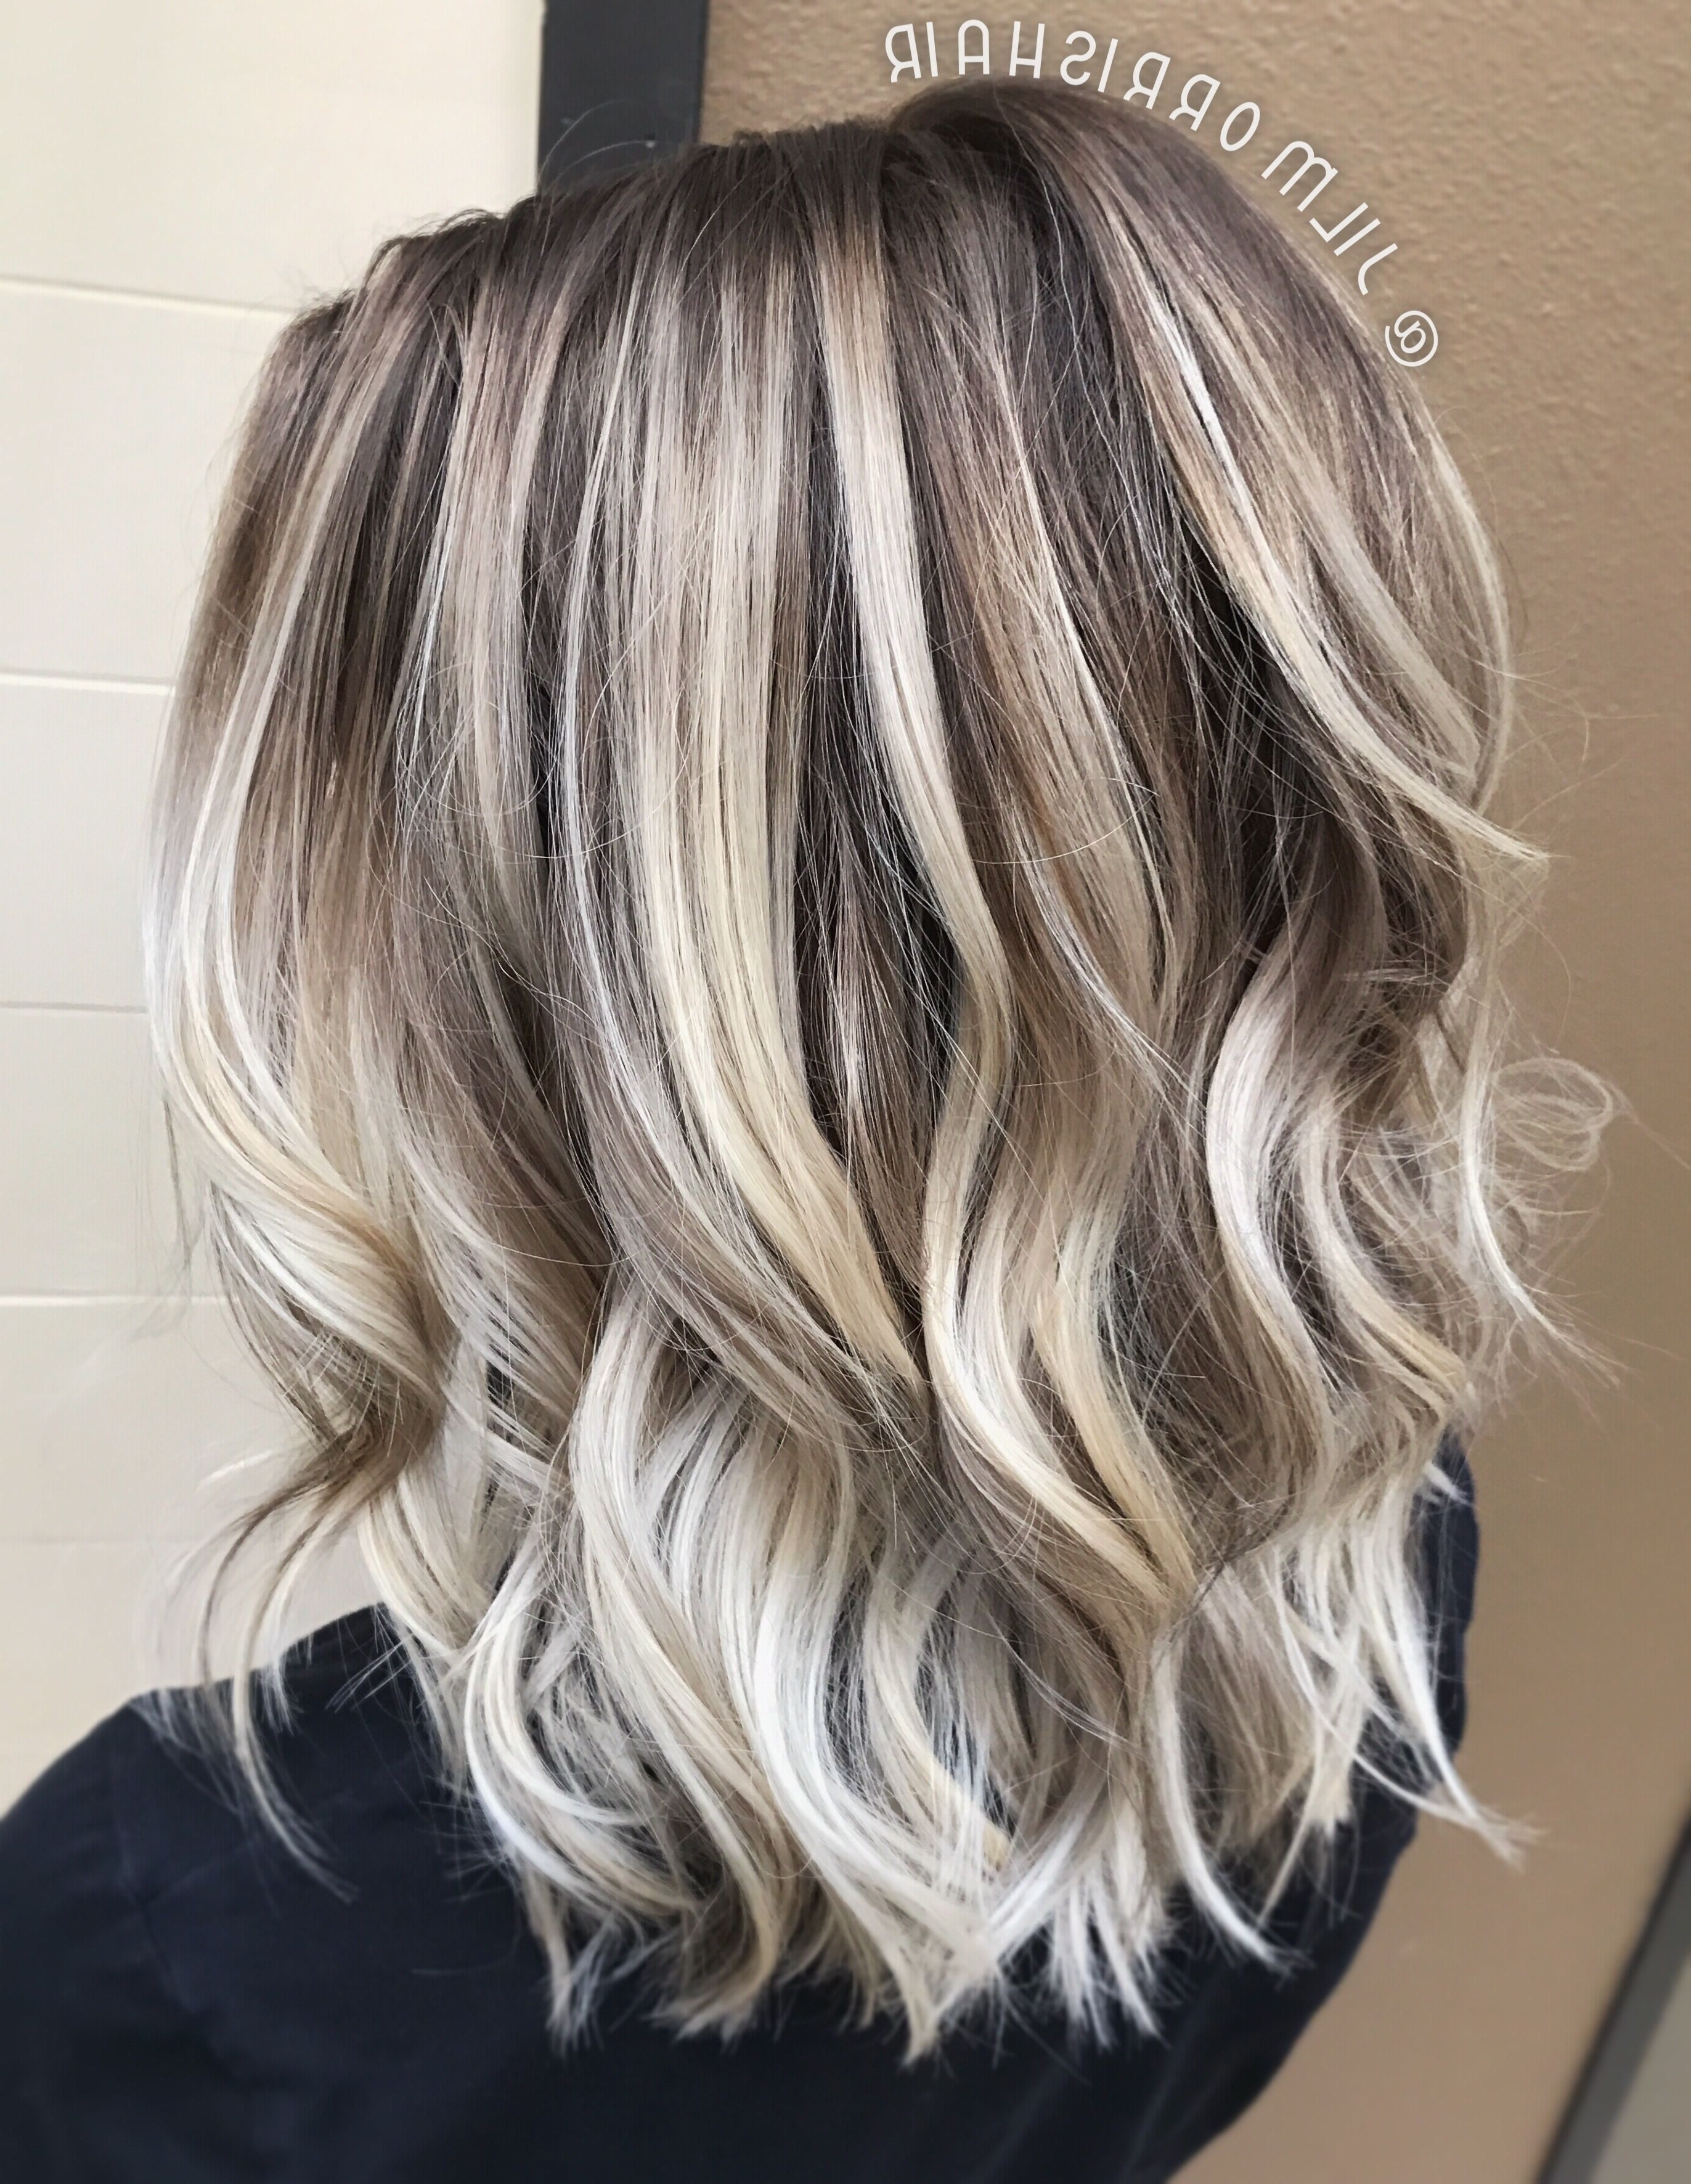 Cool Icy Ashy Blonde Balayage Highlights, Shadow Root, Waves And Intended For Widely Used Dark Roots And Icy Cool Ends Blonde Hairstyles (View 3 of 20)